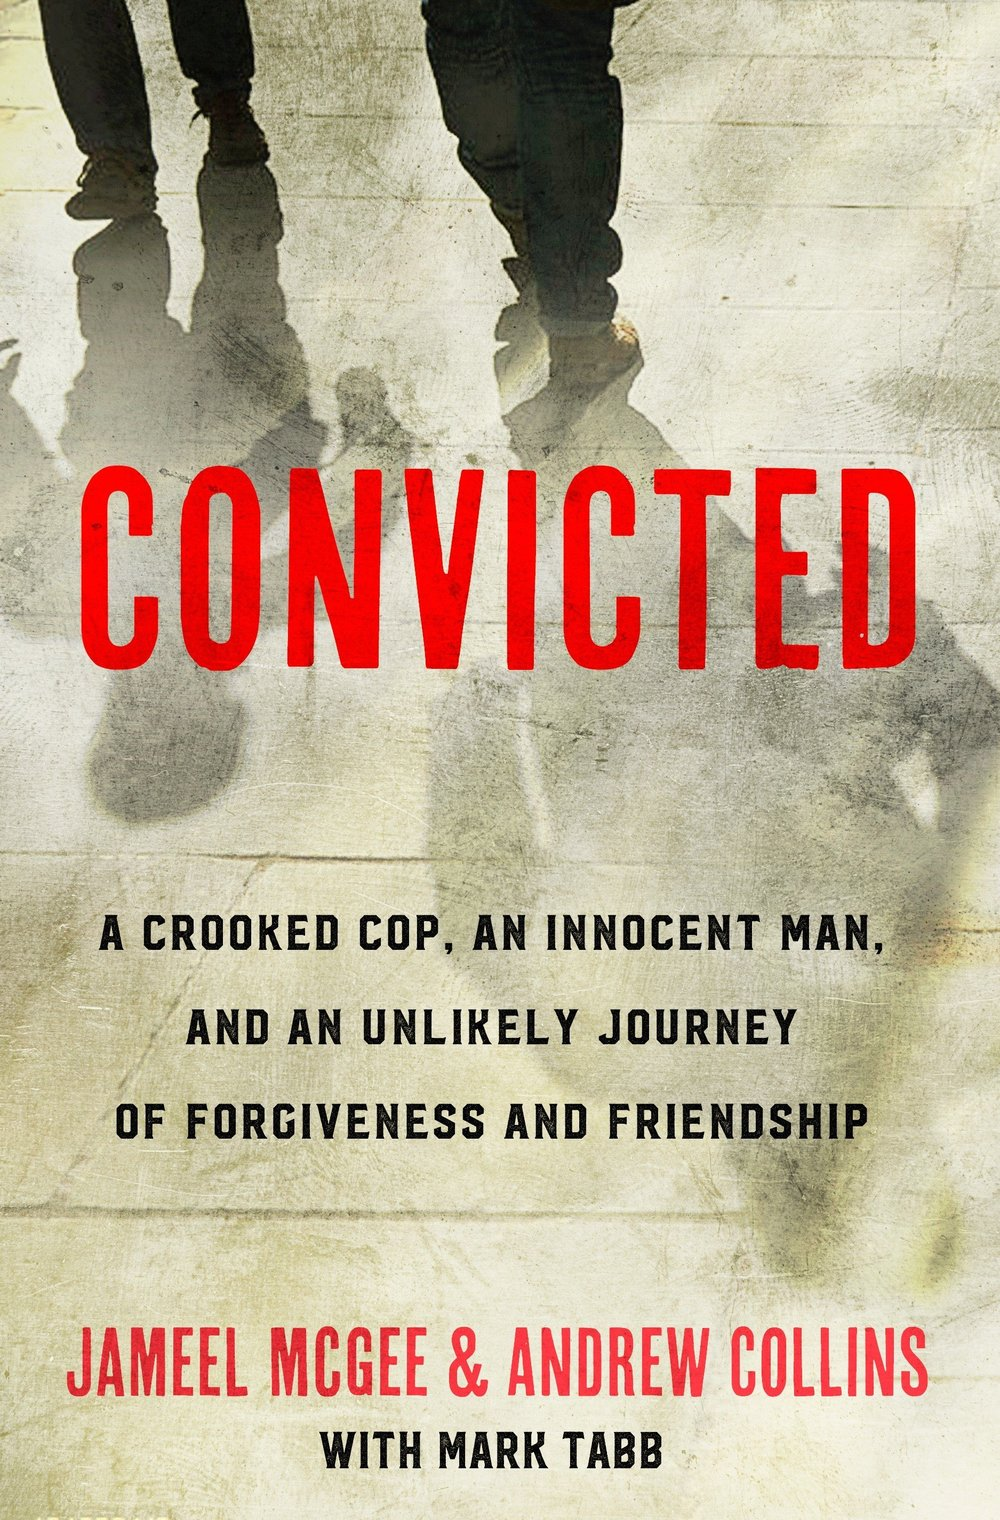 Read Their Book!  - A powerful message of hope for anyone burdened by regret and everyone who longs for a fresh start. Racial tensions had long simmered in Benton Harbor, a small city on the eastern shore of Lake Michigan, before the day a white narcotics officer--more focused on arrests than justice—set his sights on an innocent black man. But when officer Andrew Collins framed Jameel McGee for possession of crack cocaine, the surprising result was not a race riot but a transformative journey for both men.  Falsely convicted, McGee spent three years in federal prison. Collins also went to prison a few years later for falsifying police reports. While behind bars, the faith of both men deepened. But the story took its most unexpected turn once they were released--when their lives collided again in a moment brimming with mistrust and anger. The two were on a collision course—not to violence—but forgiveness.   As current as today's headlines, this explosive true story reveals how these radically conflicted men chose to let go of fear and a thirst for revenge to pursue reconciliation for themselves, their community, and our racially divided nation.